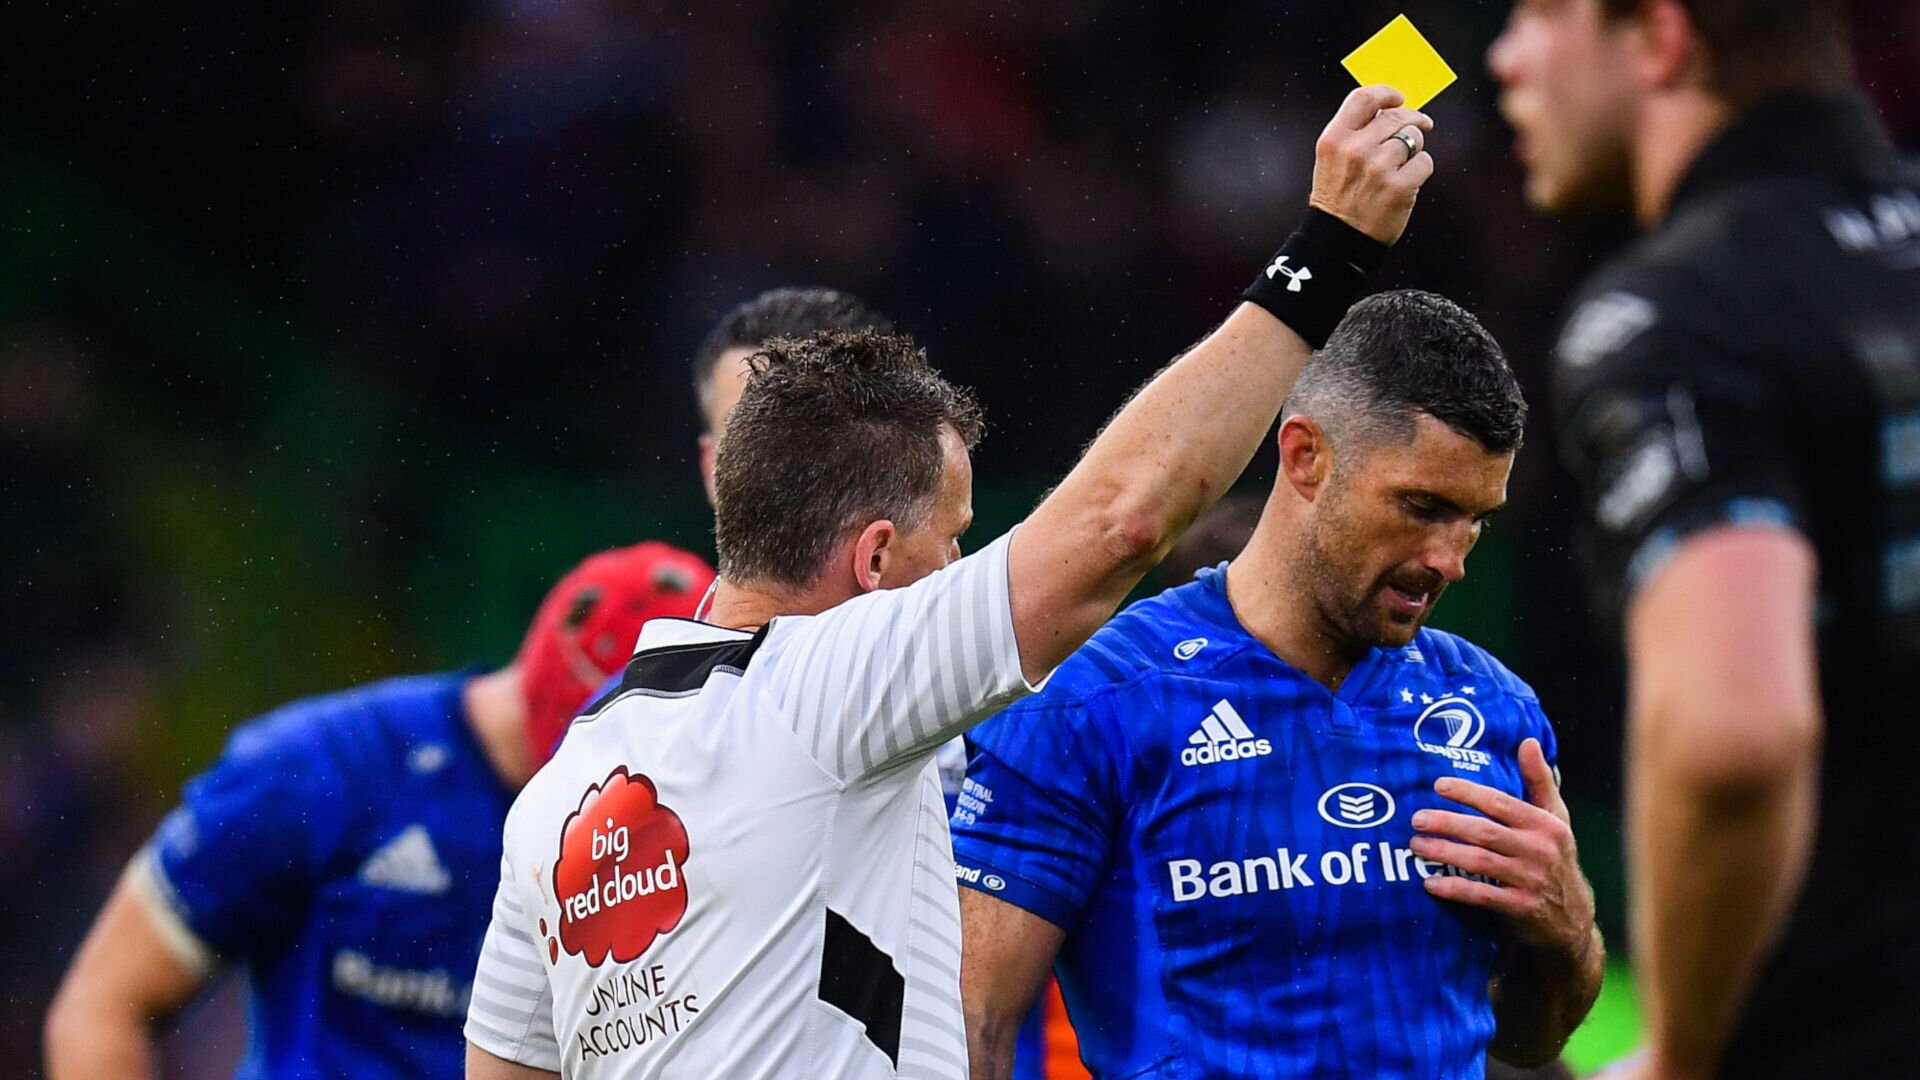 Nigel Owens issues some sound career advice to Rob Kearney